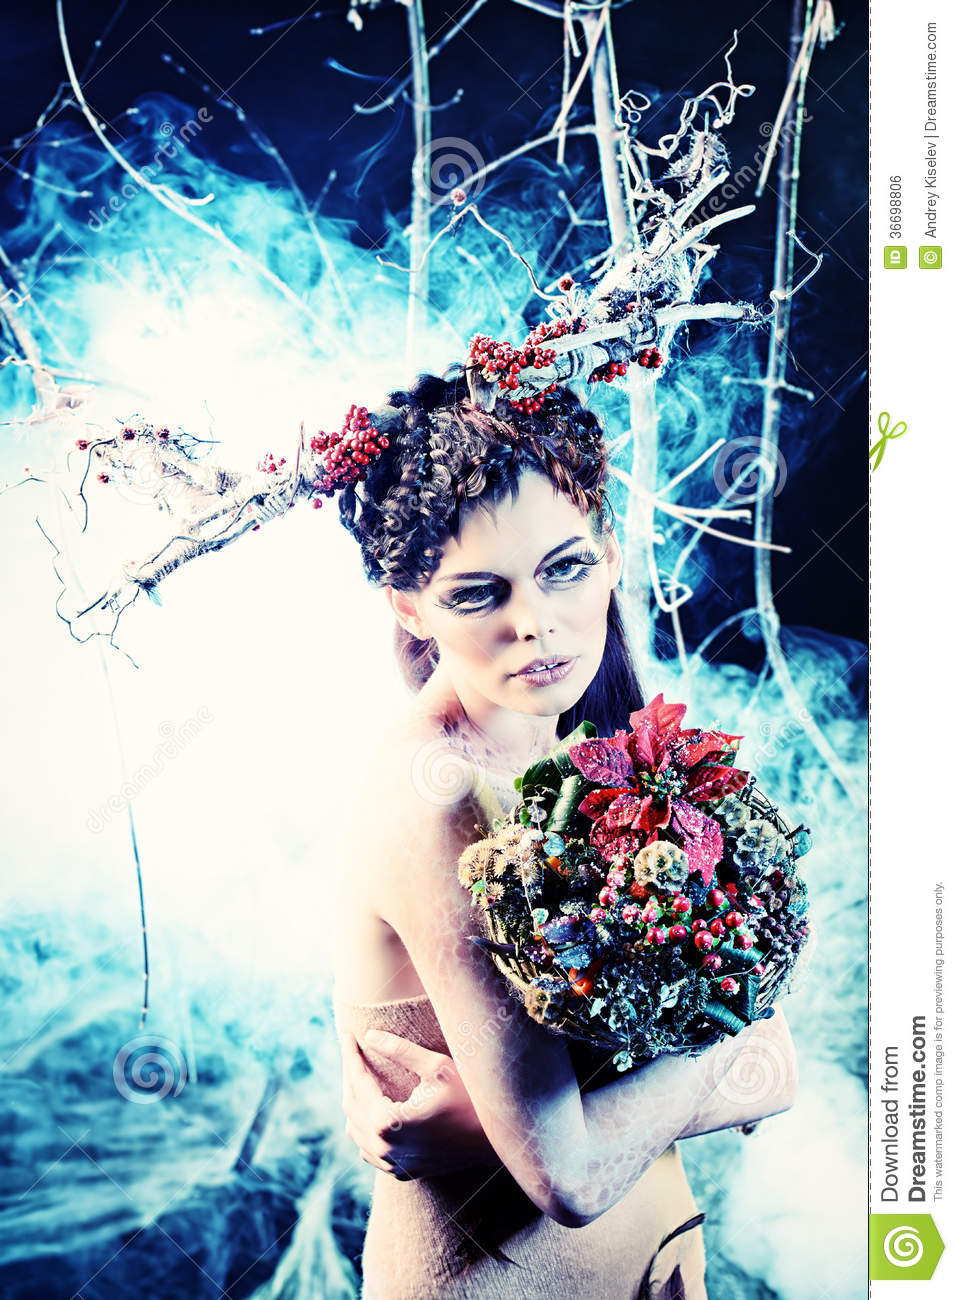 Winter Bouquet Royalty Free Stock Image  Image 36698806